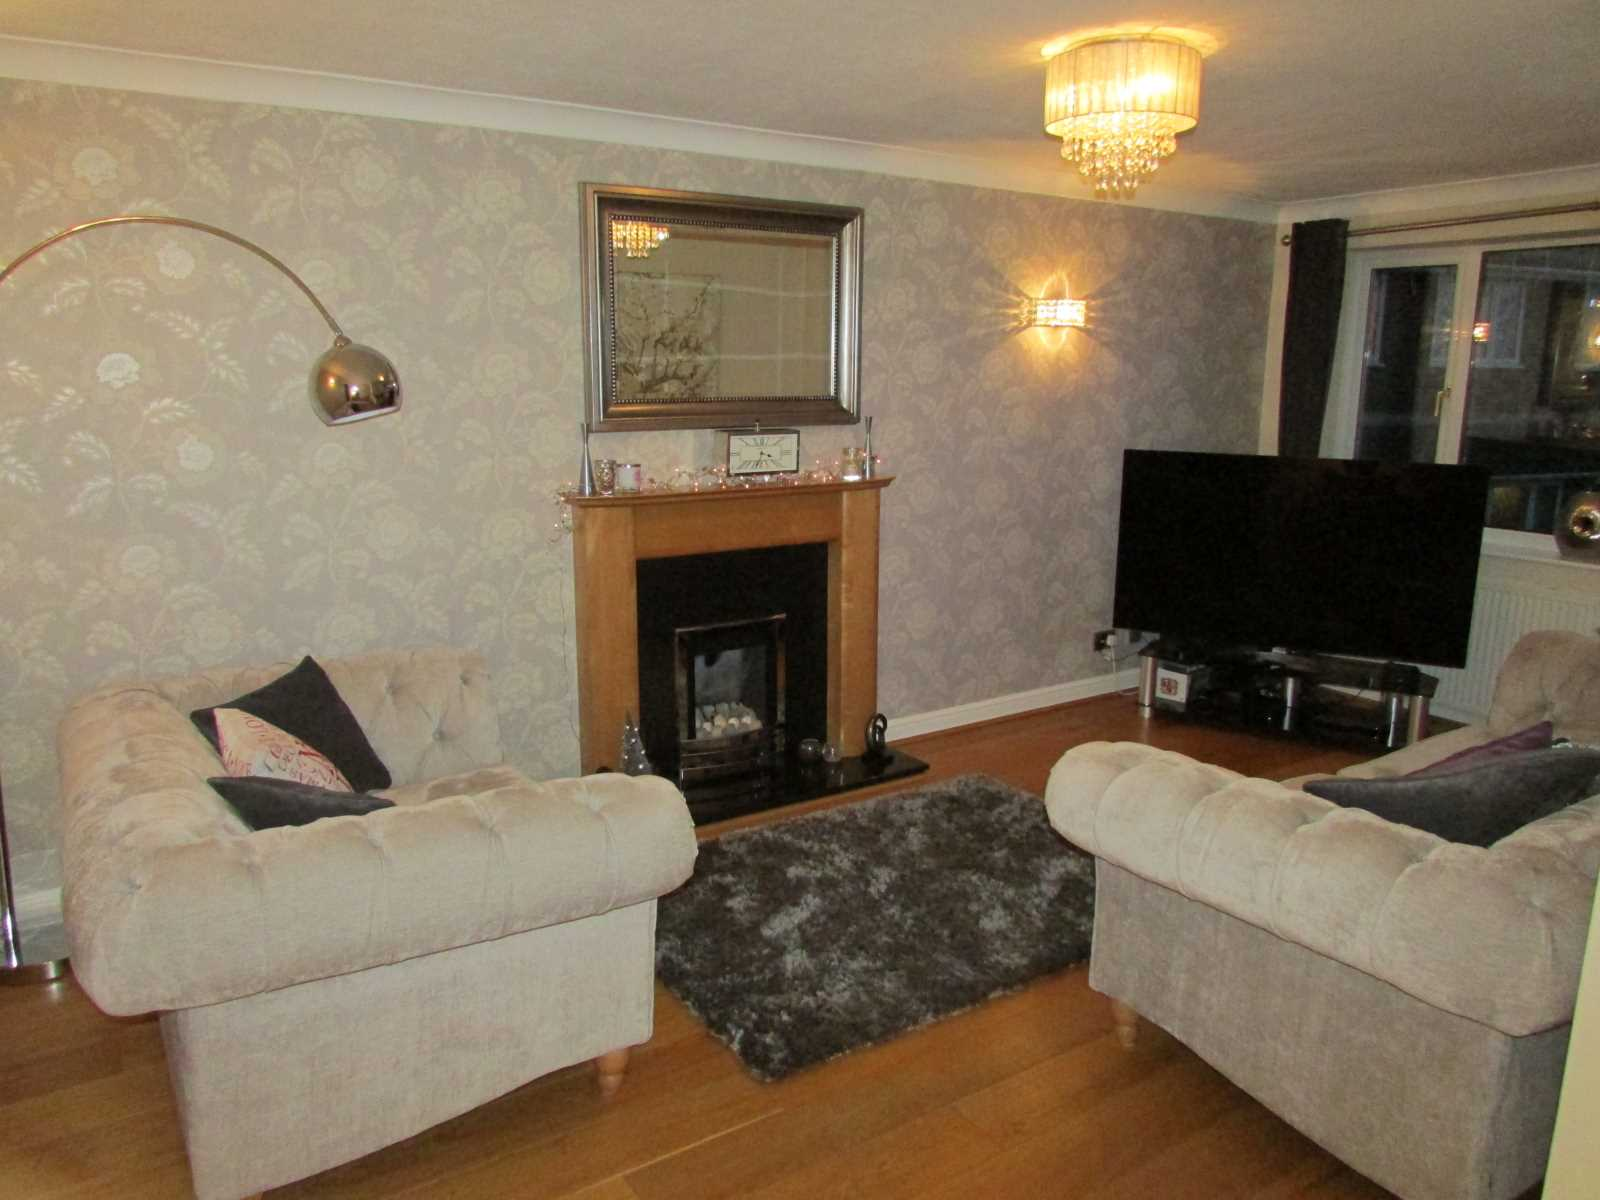 43 Peebles Close, Lindley, Huddersfield, West Yorkshire HD3 3WD